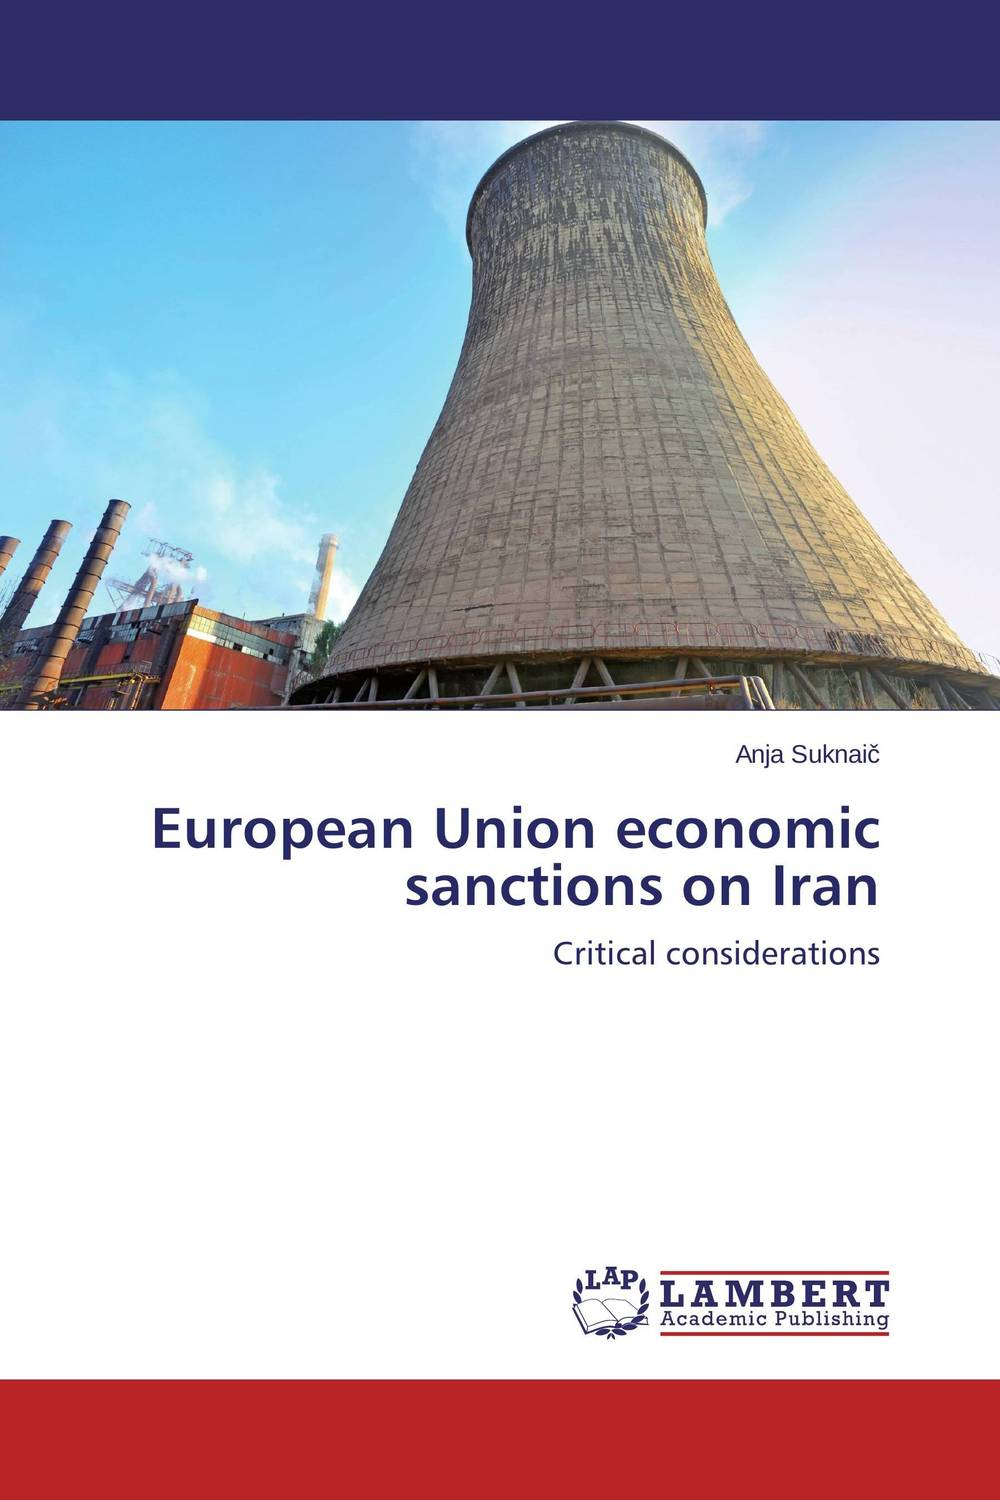 European Union economic sanctions on Iran bahram navazeni iran and the eagles